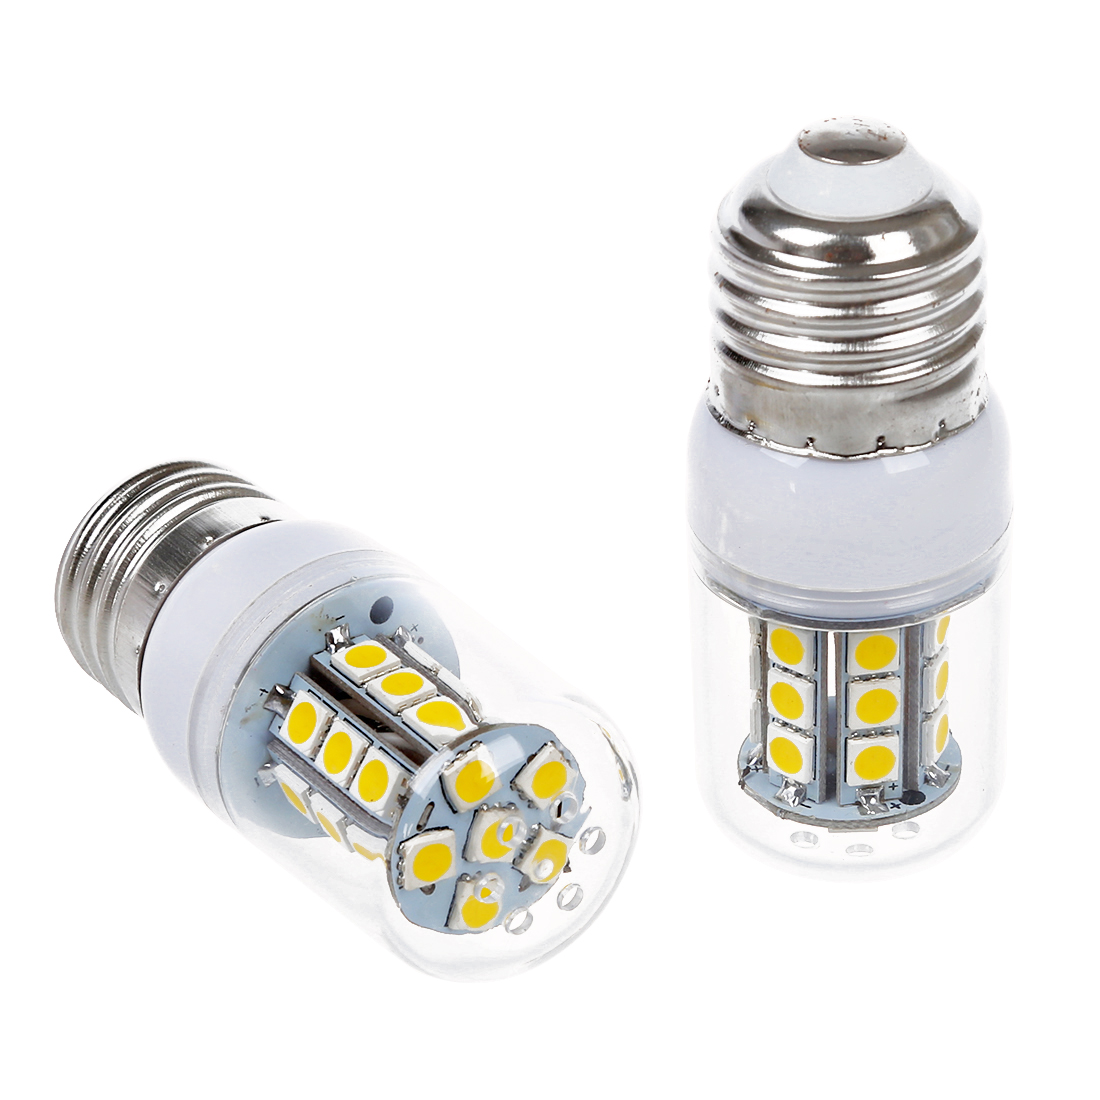 4 X E27 bulb Spot lamp 5050 SMD 27 LED Warm White 3600K 300LM